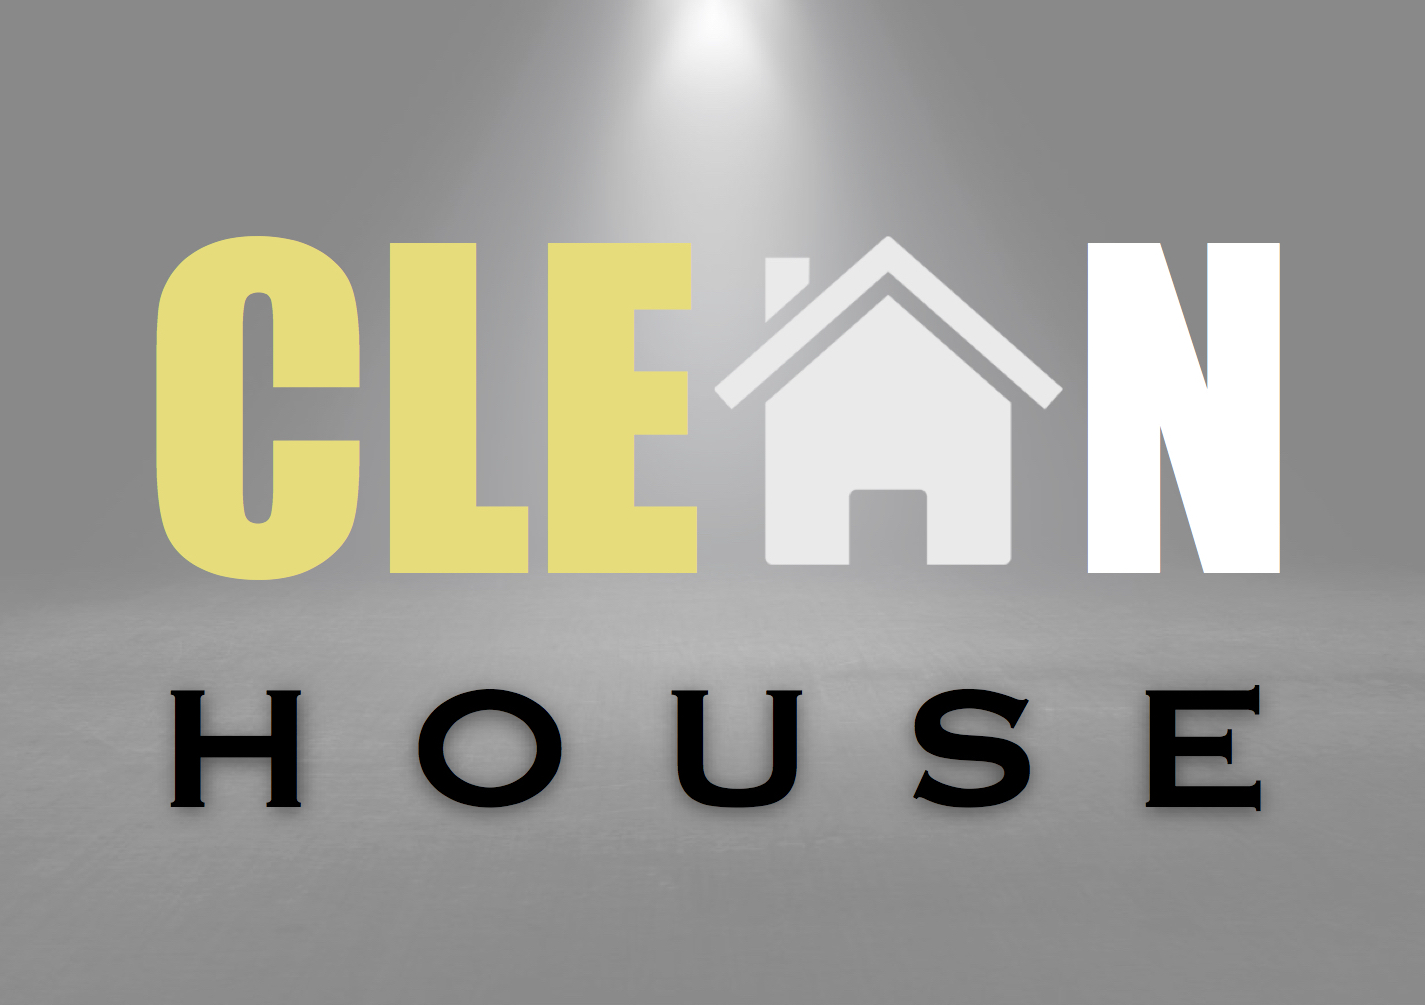 CLEAN HOUSE logo final 4-5-18.jpg